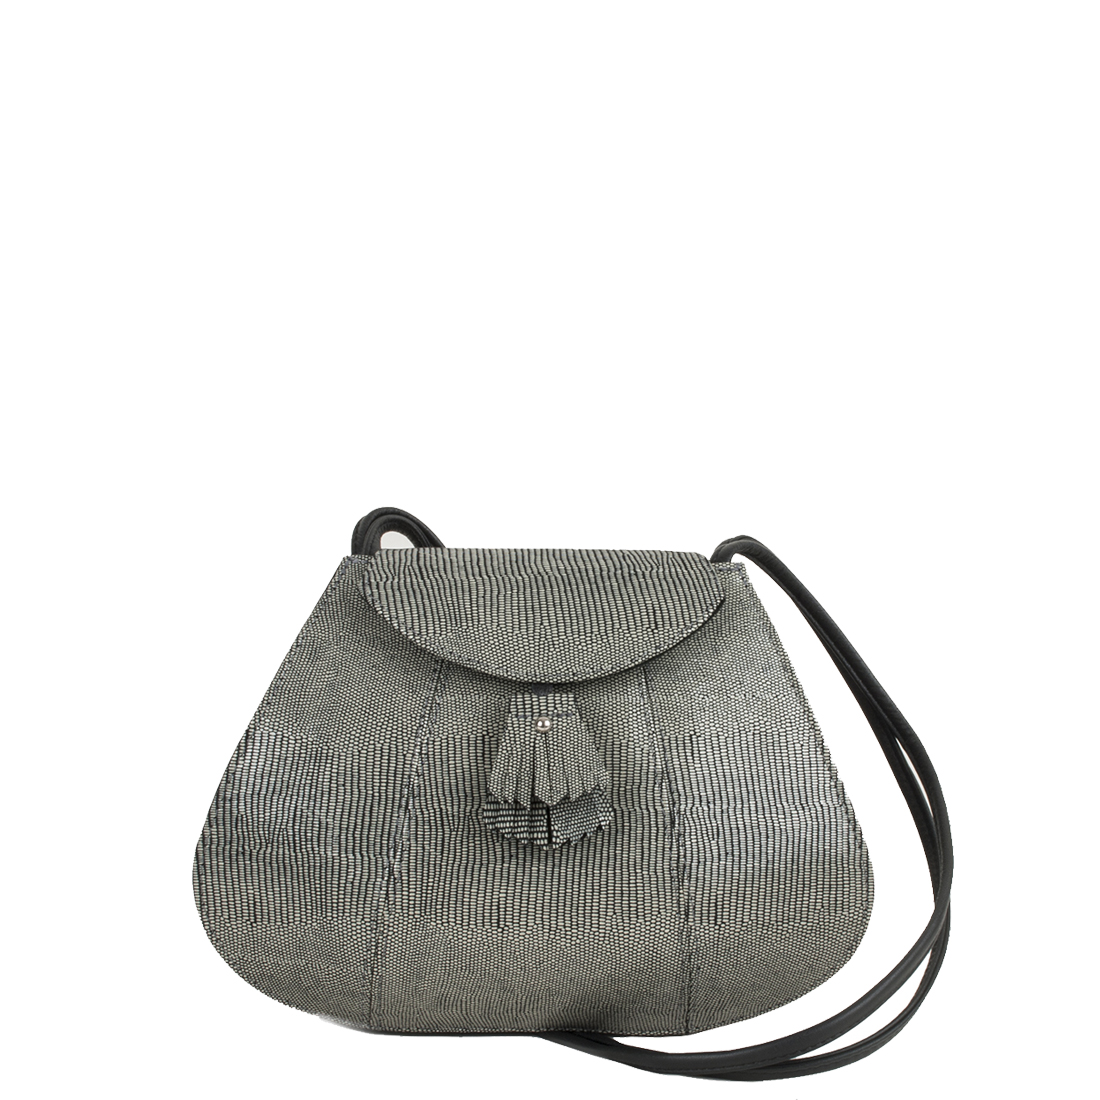 Florence Courmayeur Leather Shoulder Bag